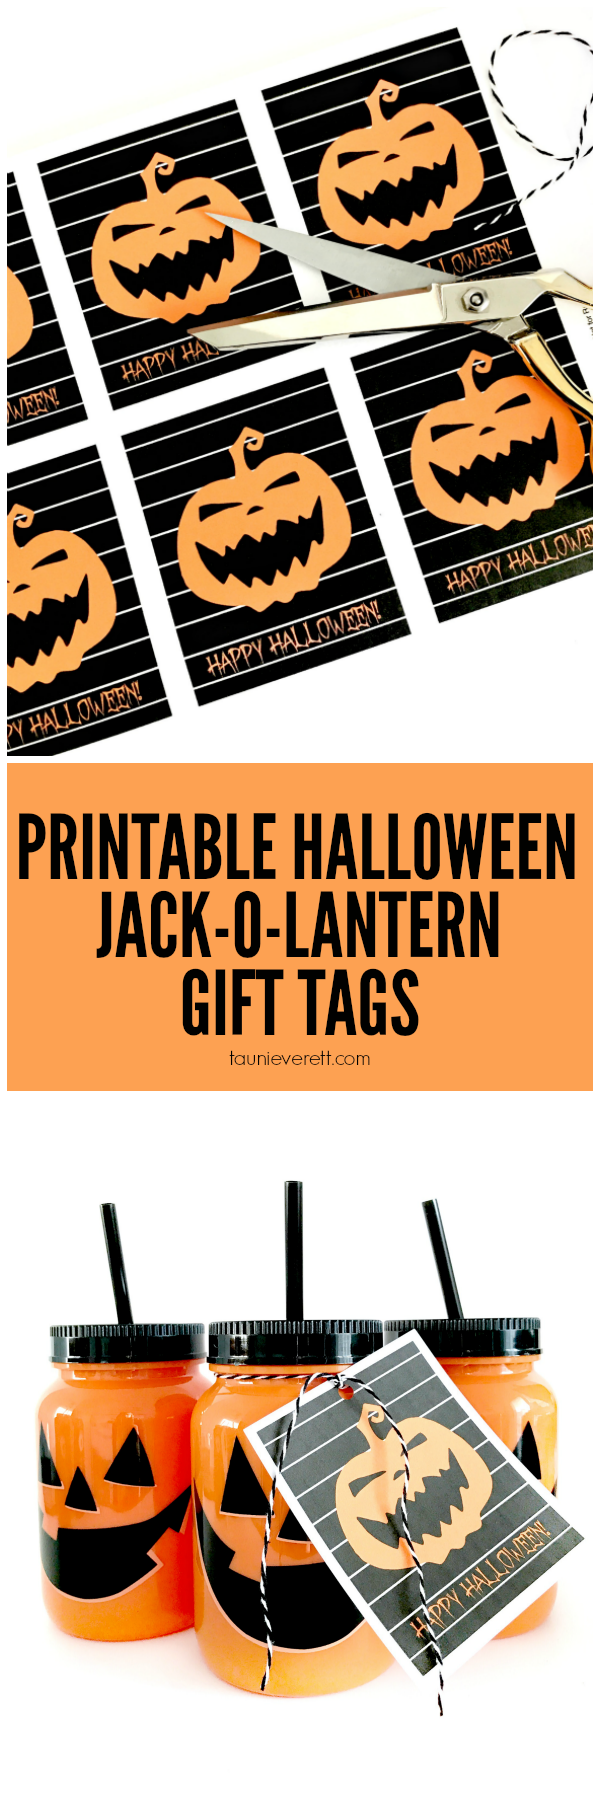 picture relating to Printable Halloween Gift Tags identified as Jack-O-Lantern Halloween Printable Reward Tag - 1825